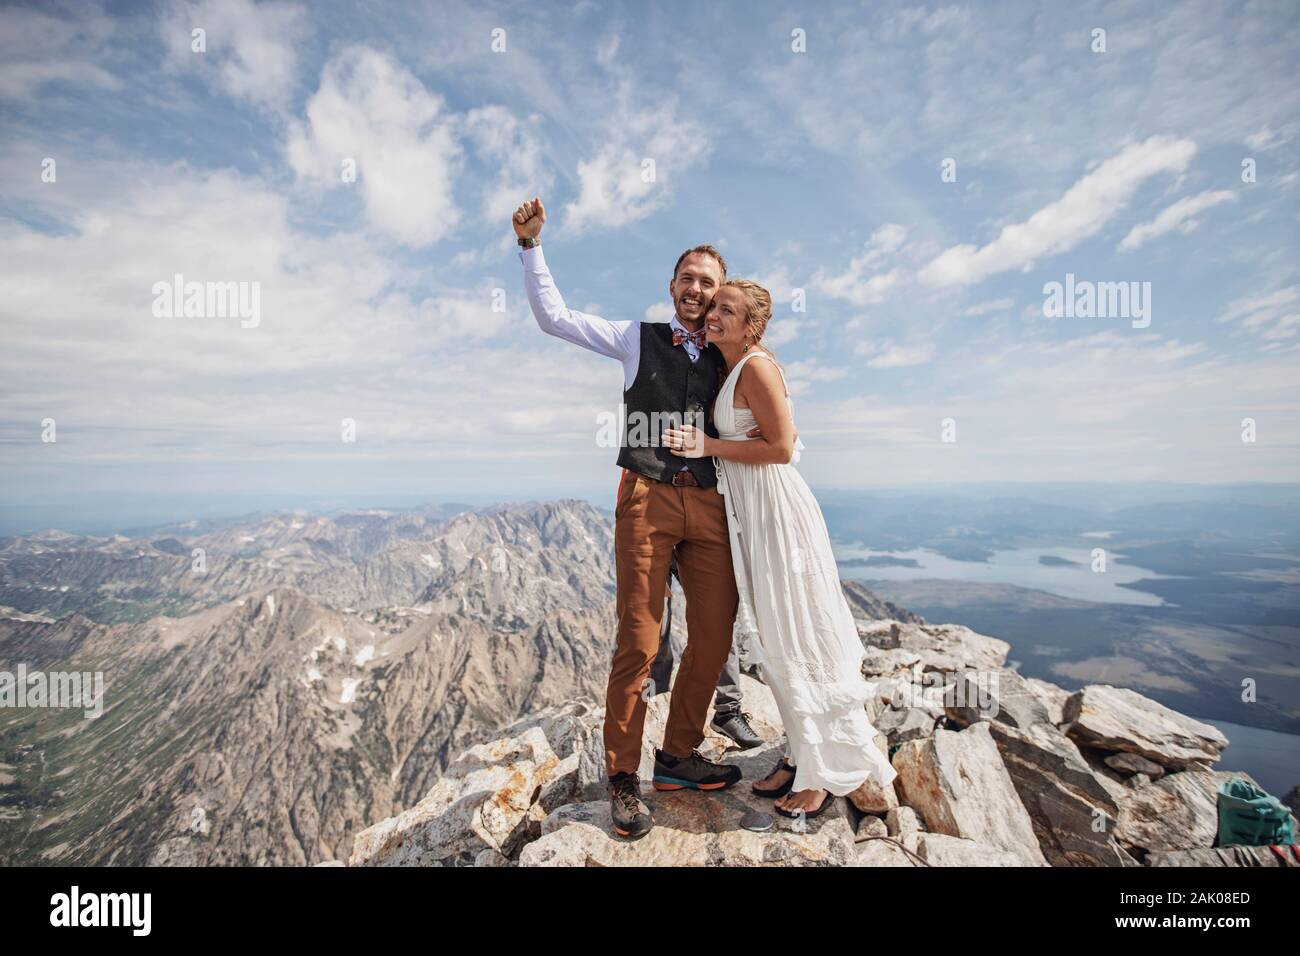 Newlywed bride and groom celebrate on mountain after getting married Stock Photo